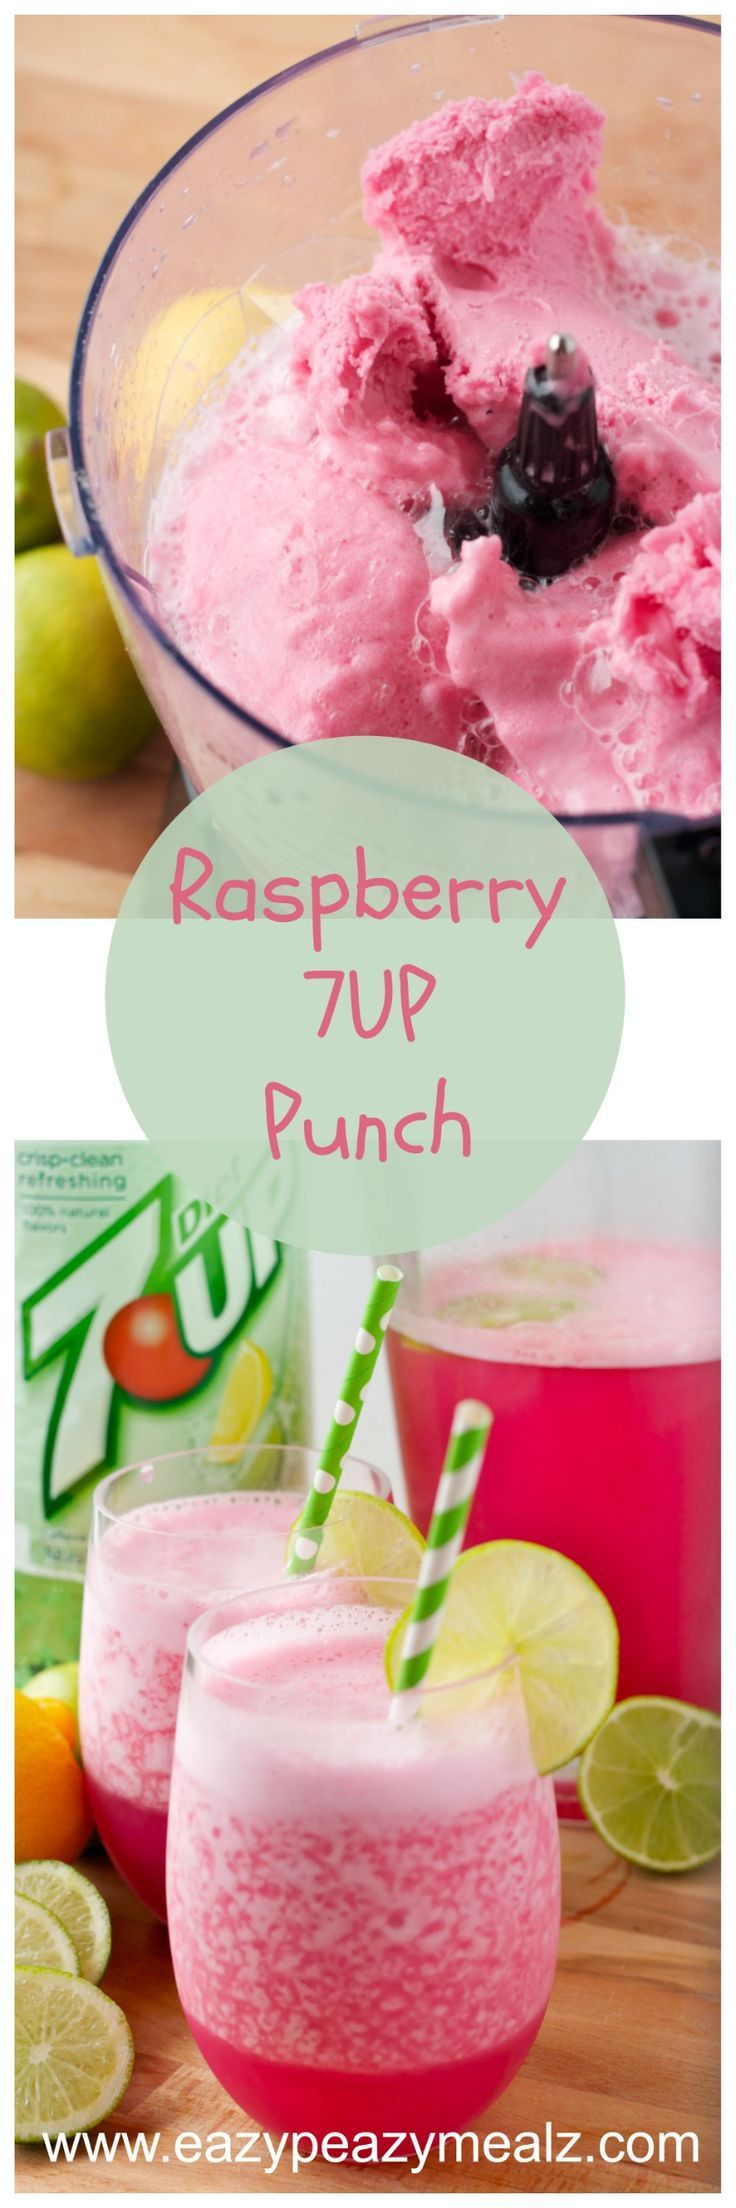 Best 25+ Easy punch recipes ideas on Pinterest | Pineapple punch ...